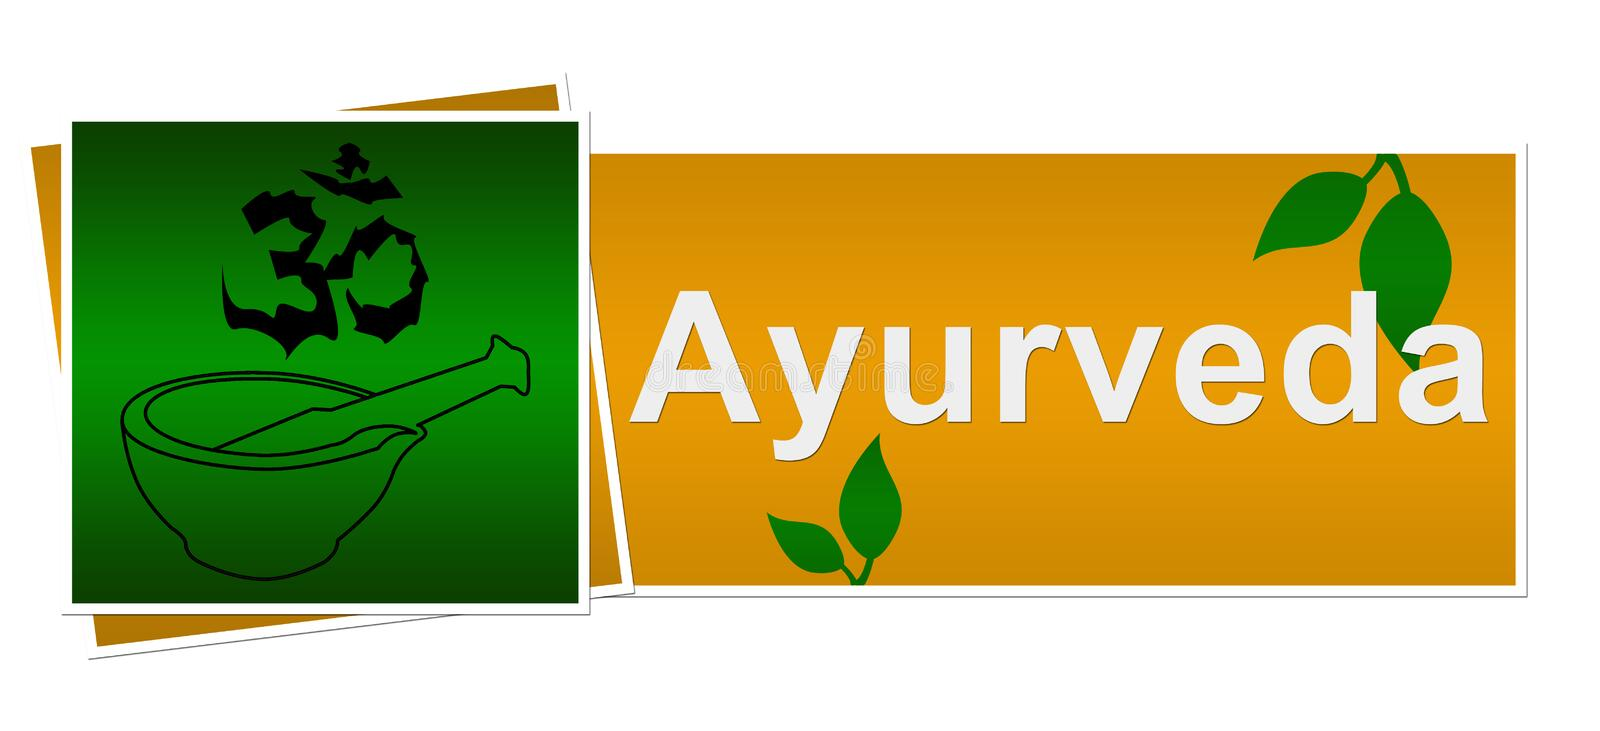 Download Ayurveda Green Brown Two Squares Stock Illustration - Image: 36968303